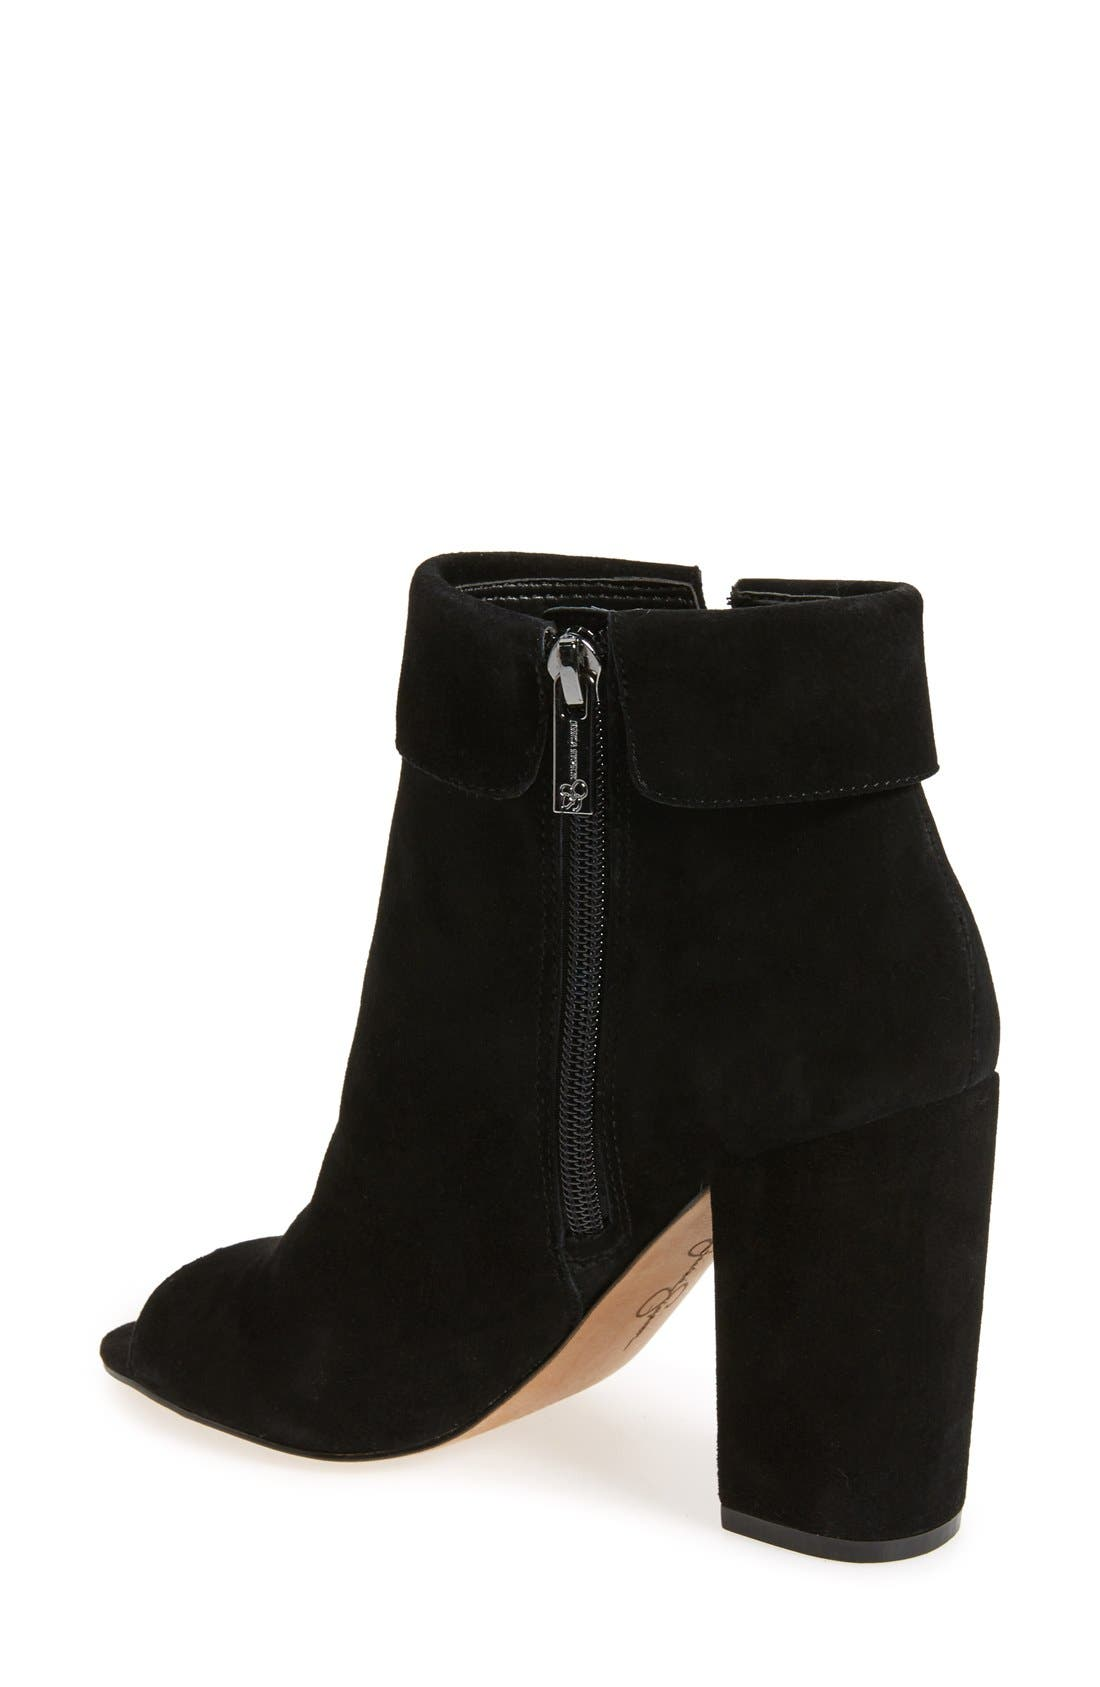 Alternate Image 2  - Jessica Simpson 'Kailey' Feather Charm Peep Toe Bootie (Women)